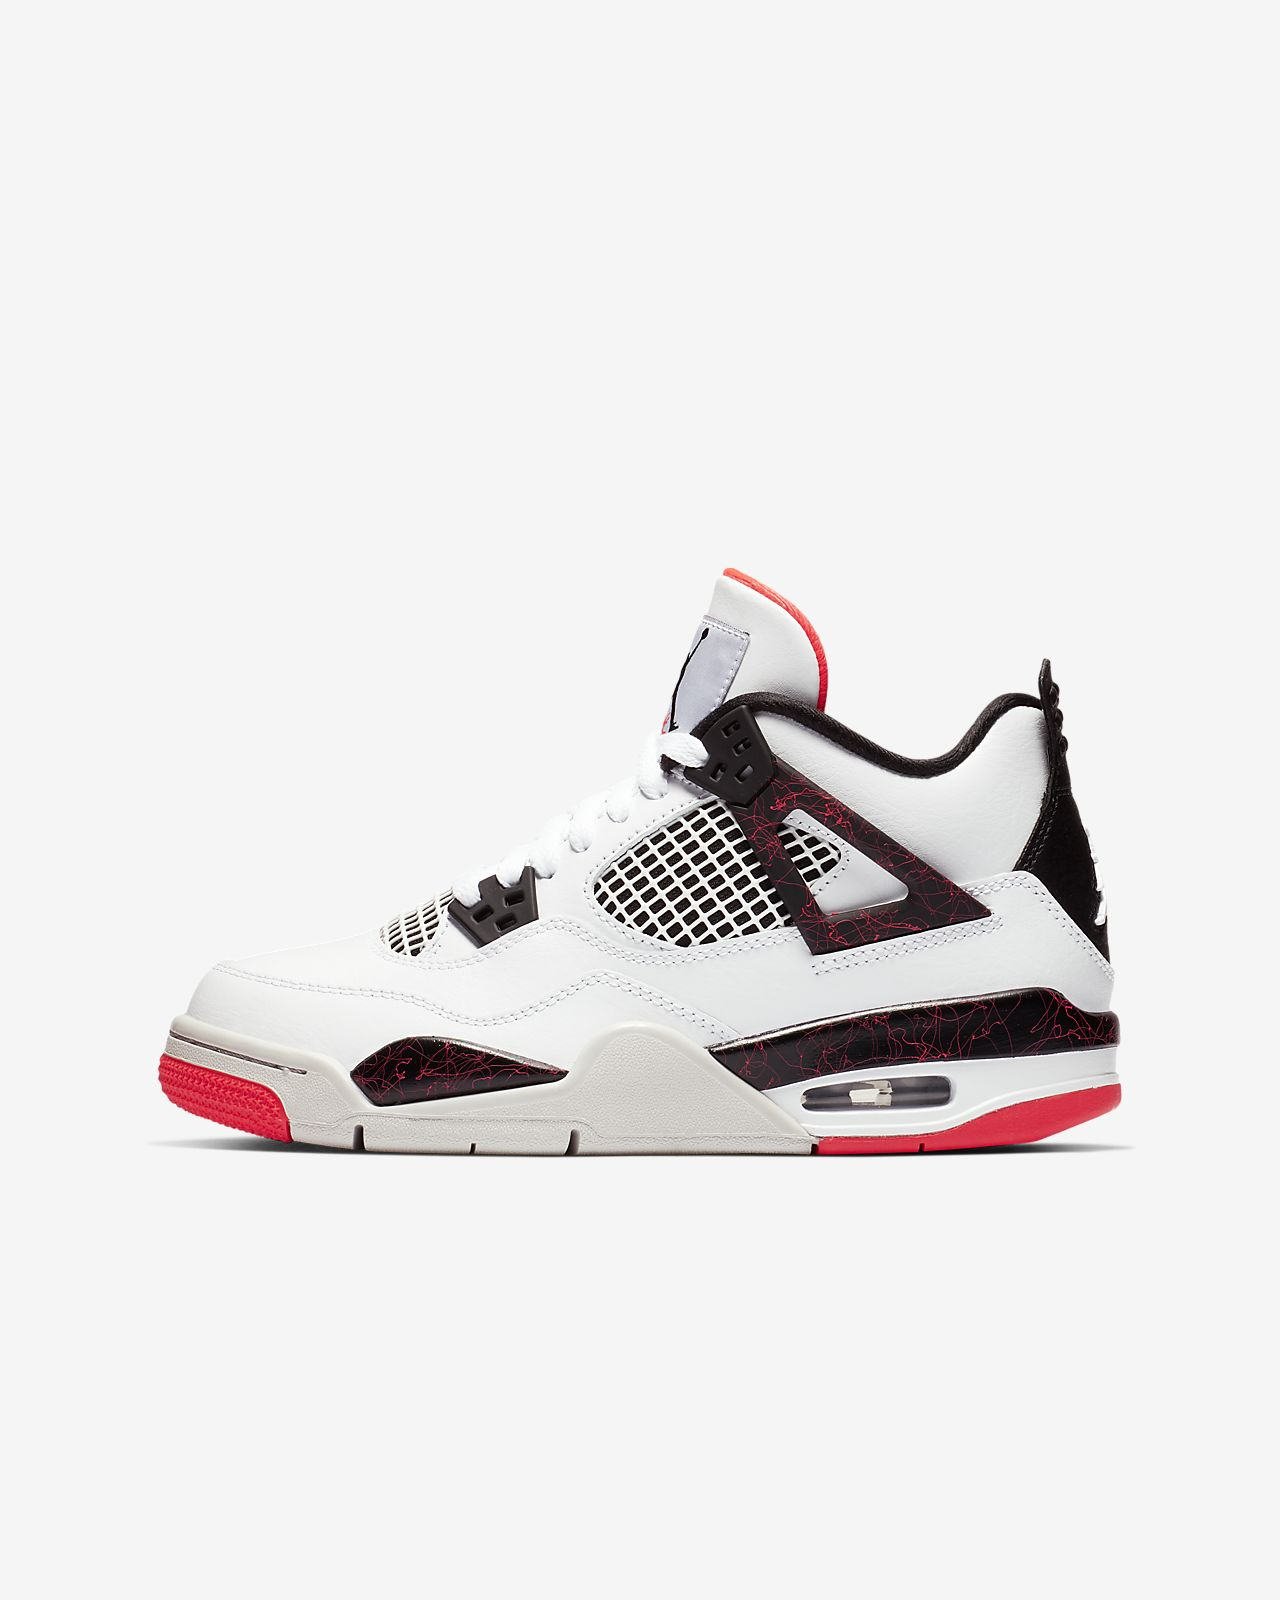 new product 72197 bcfe4 Older Kids  Shoe. Air Jordan 4 Retro